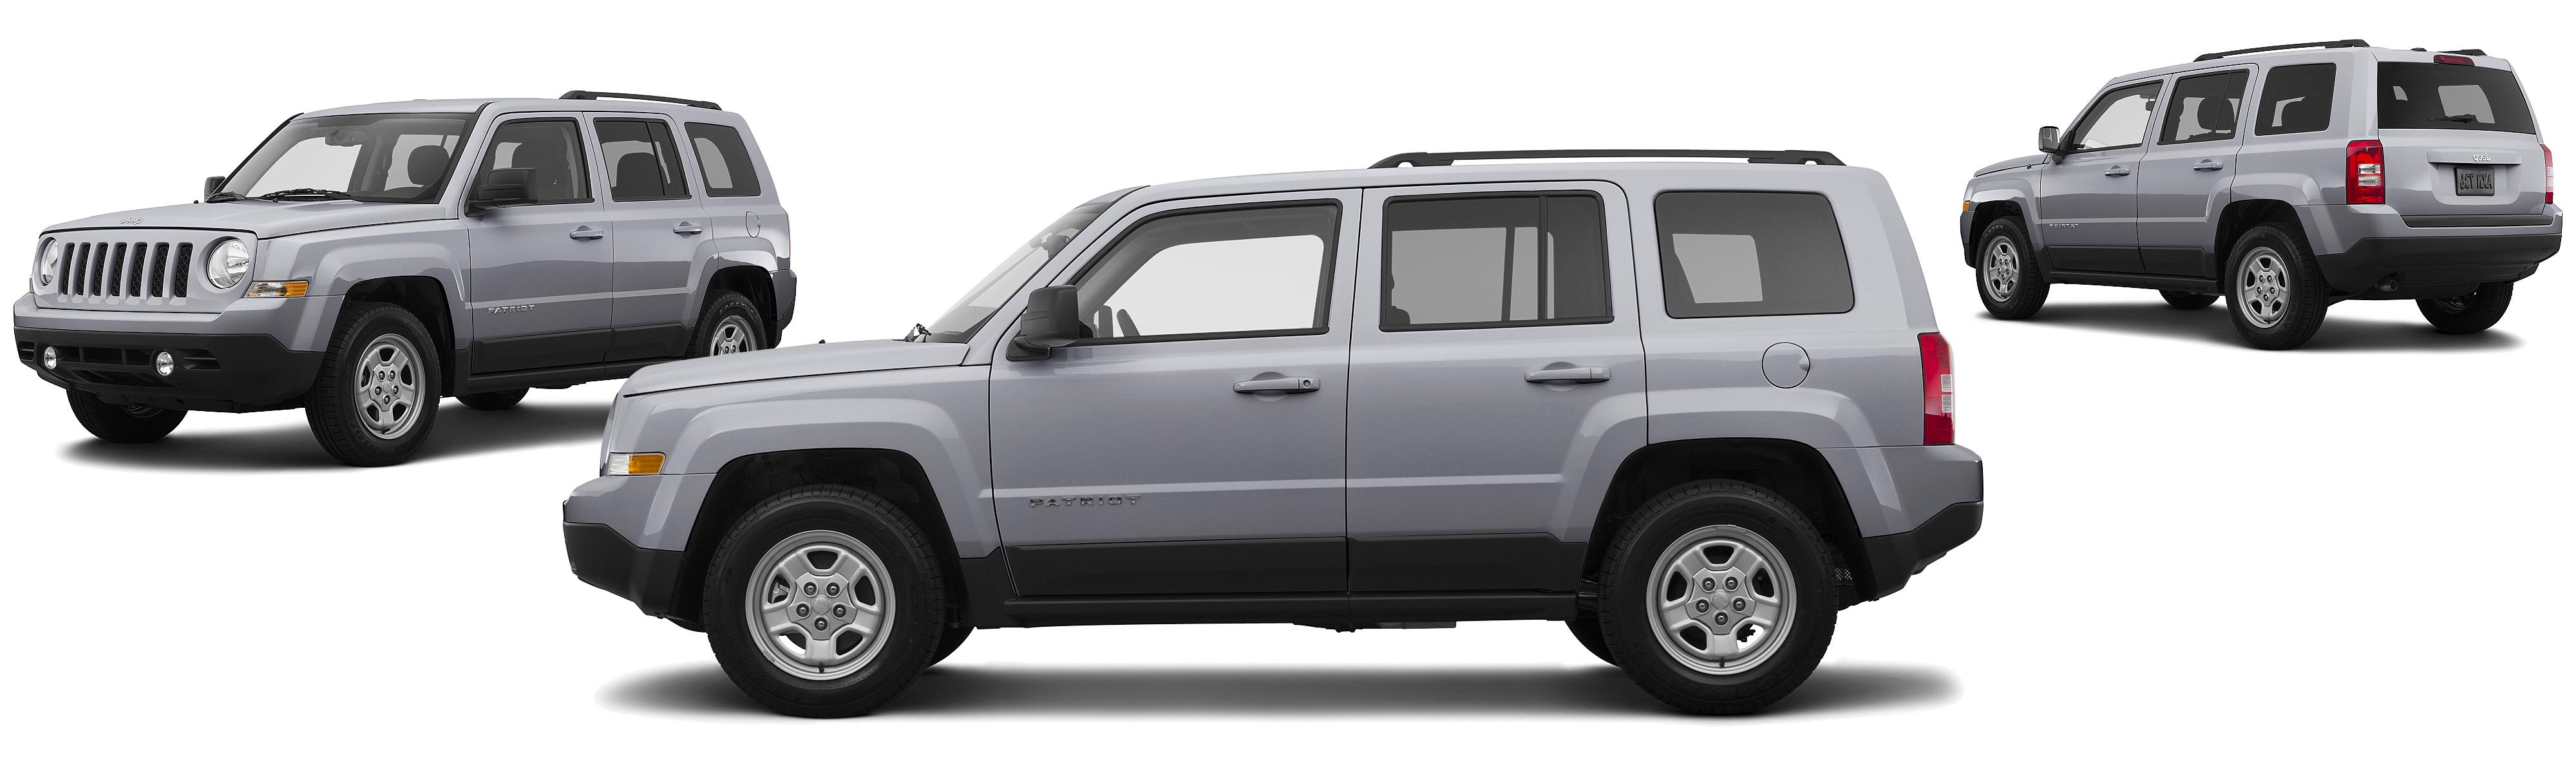 2015 jeep patriot 4x4 sport 4dr suv - research - groovecar